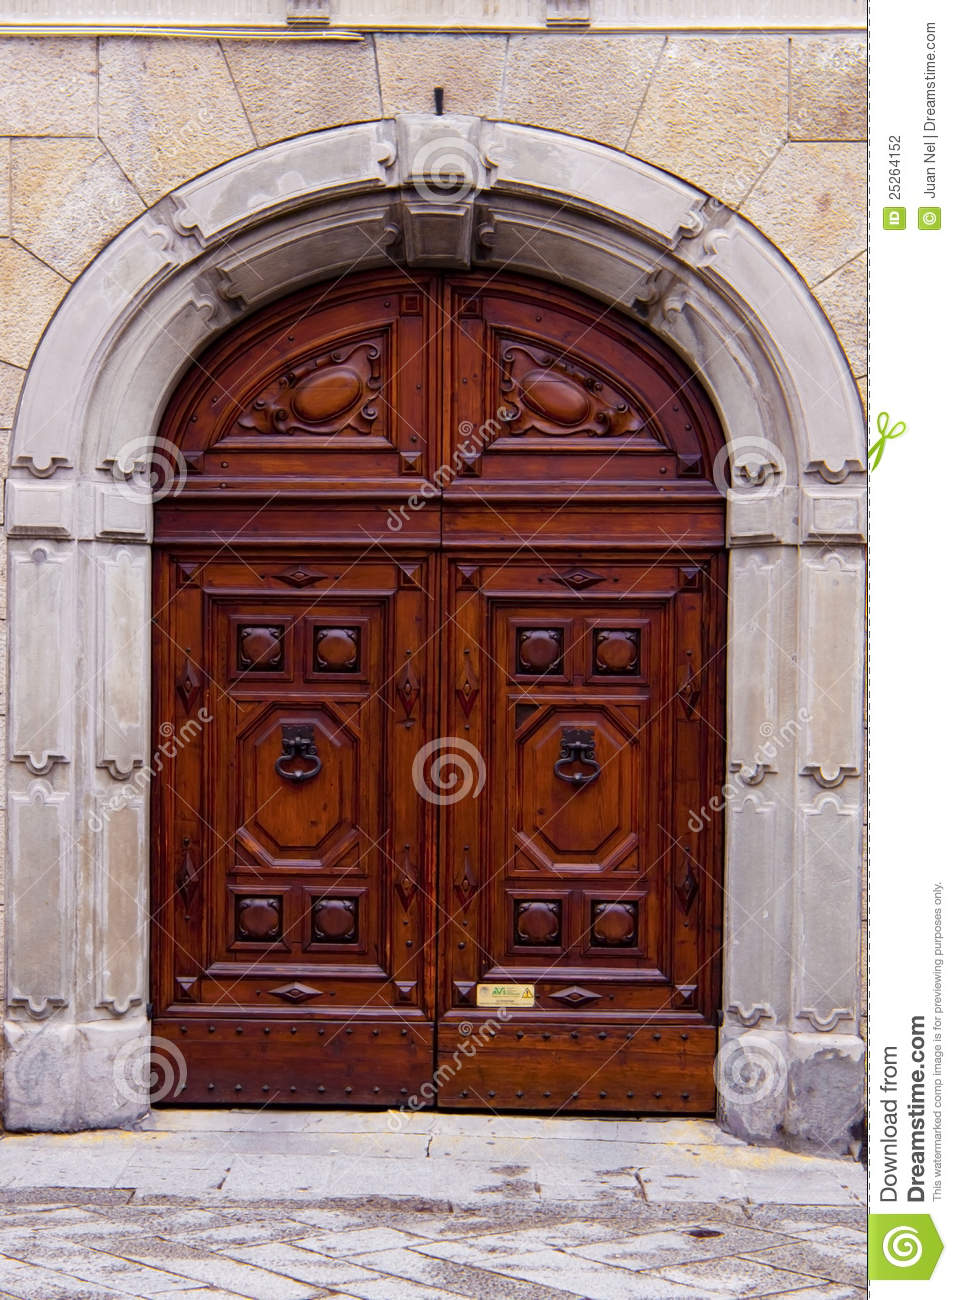 door gate design download  | 570 x 483